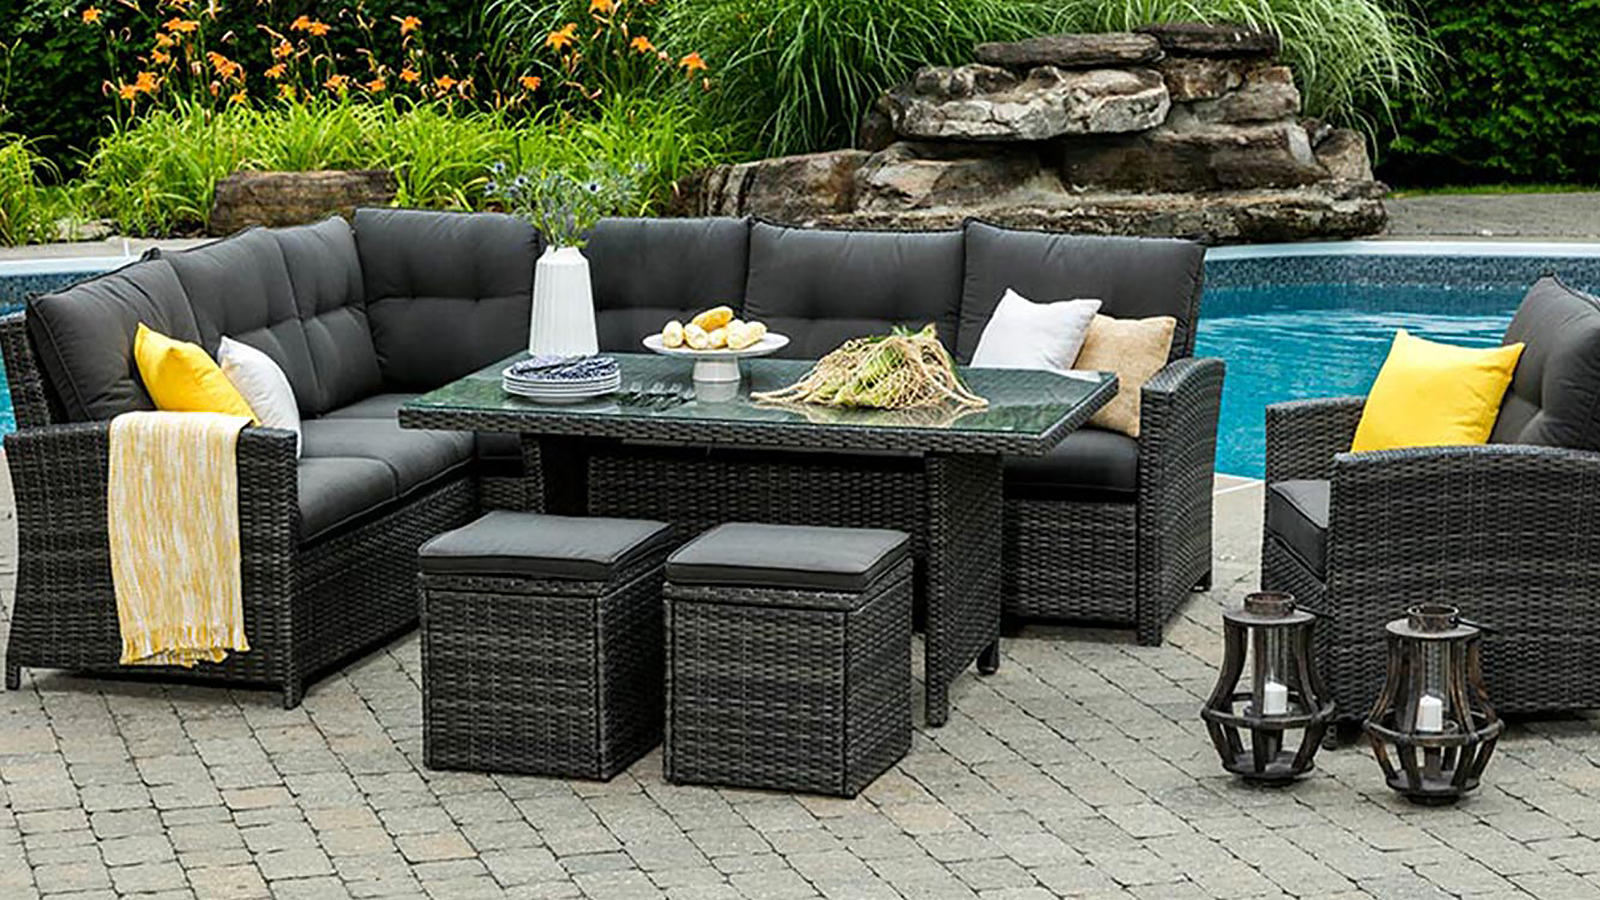 The valencia outdoor dining collection